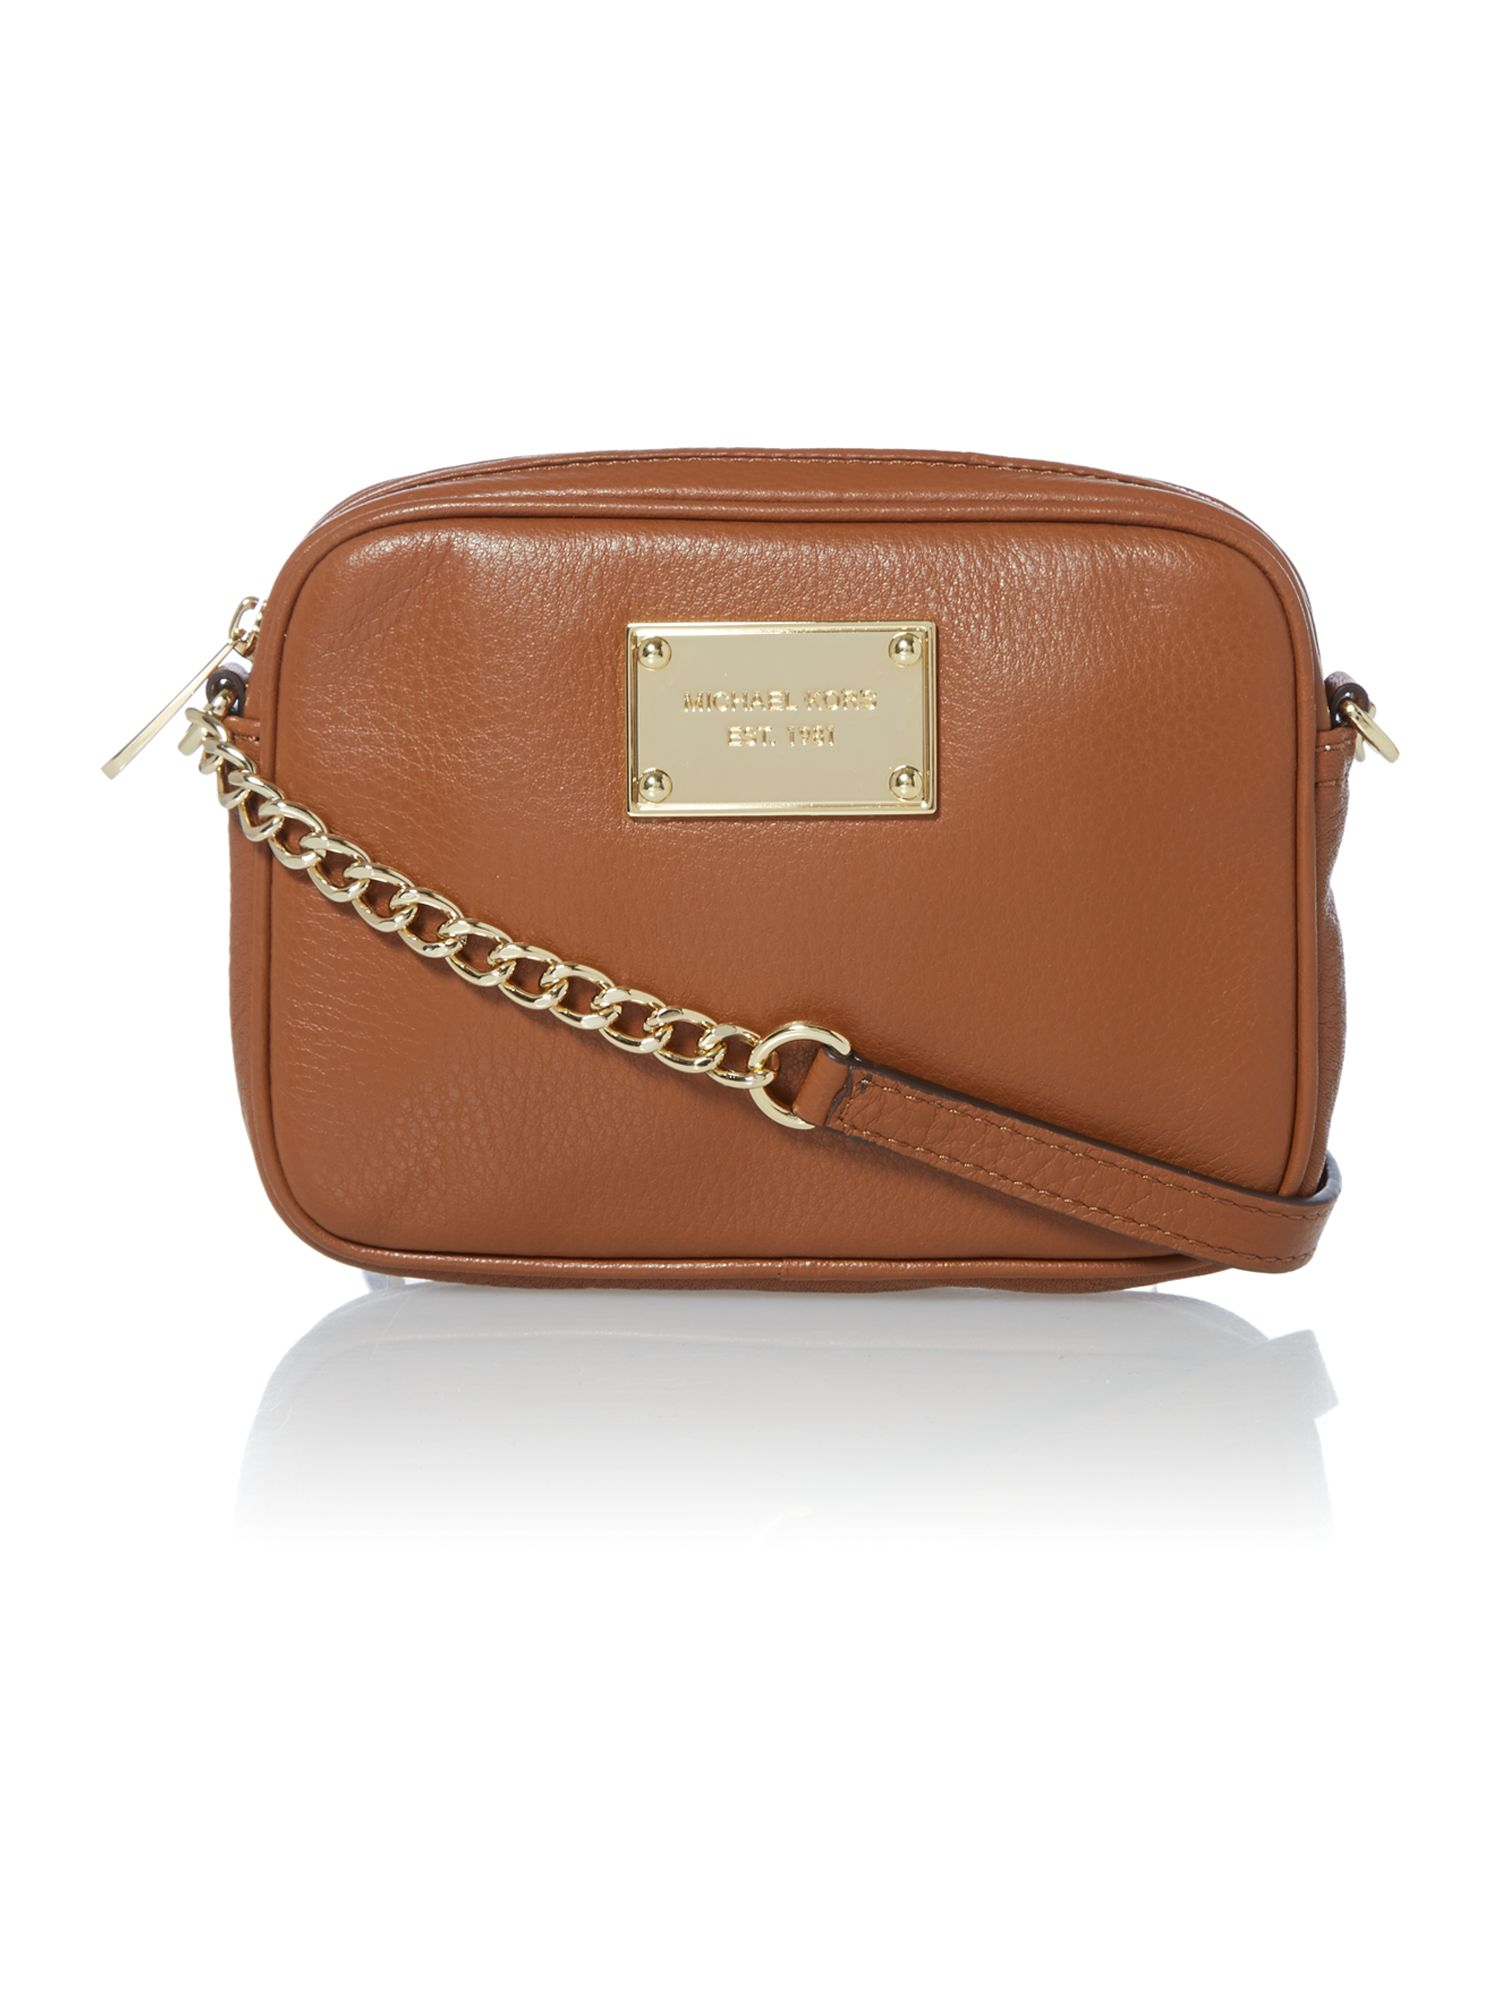 Jet Set Item tan cross body bag